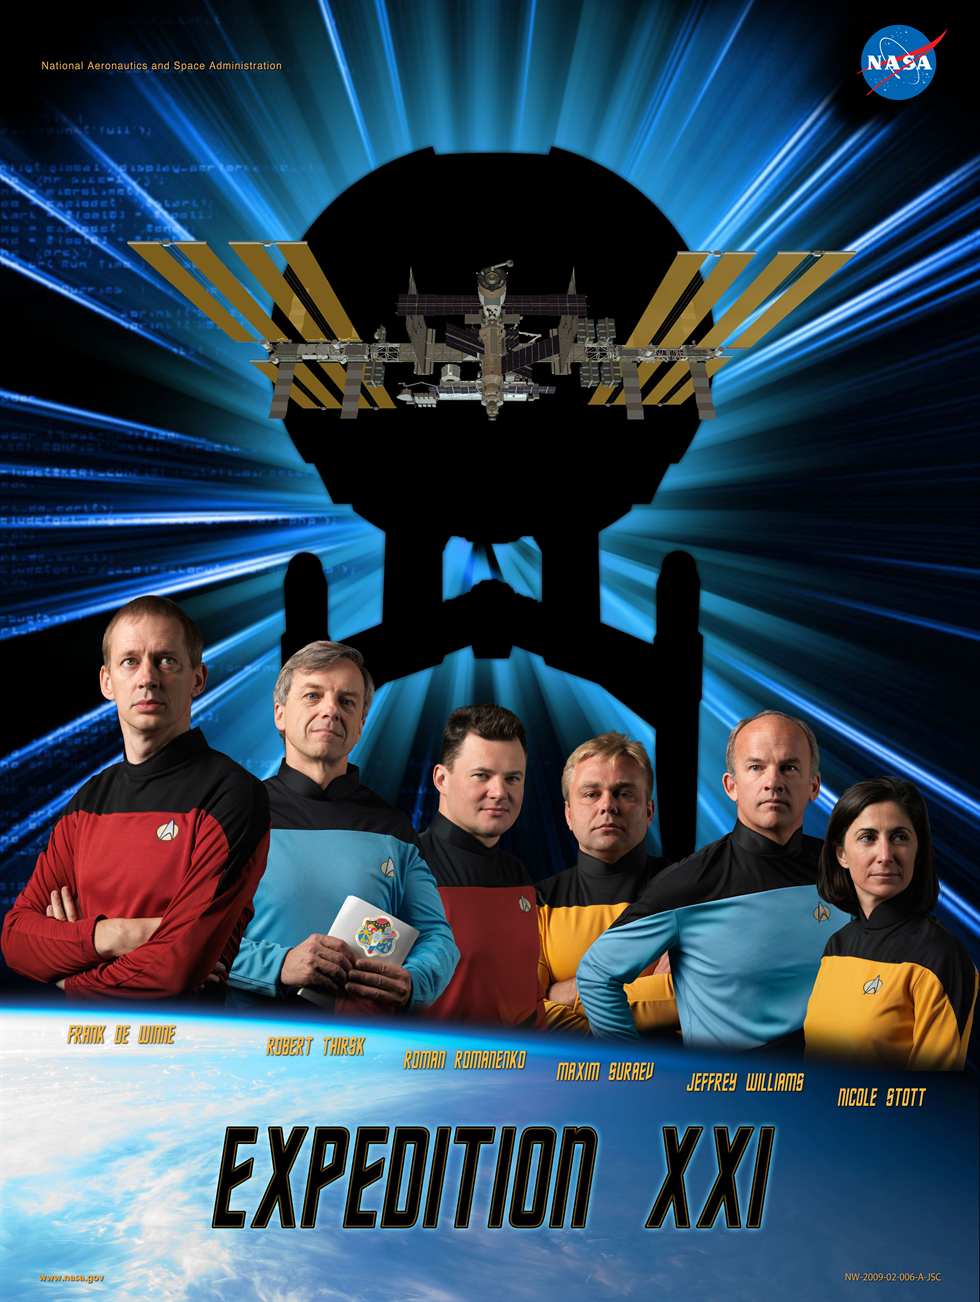 The Space Flight Awareness (SFA) poster for the Expedition 21 crew. Image Credit: NASA